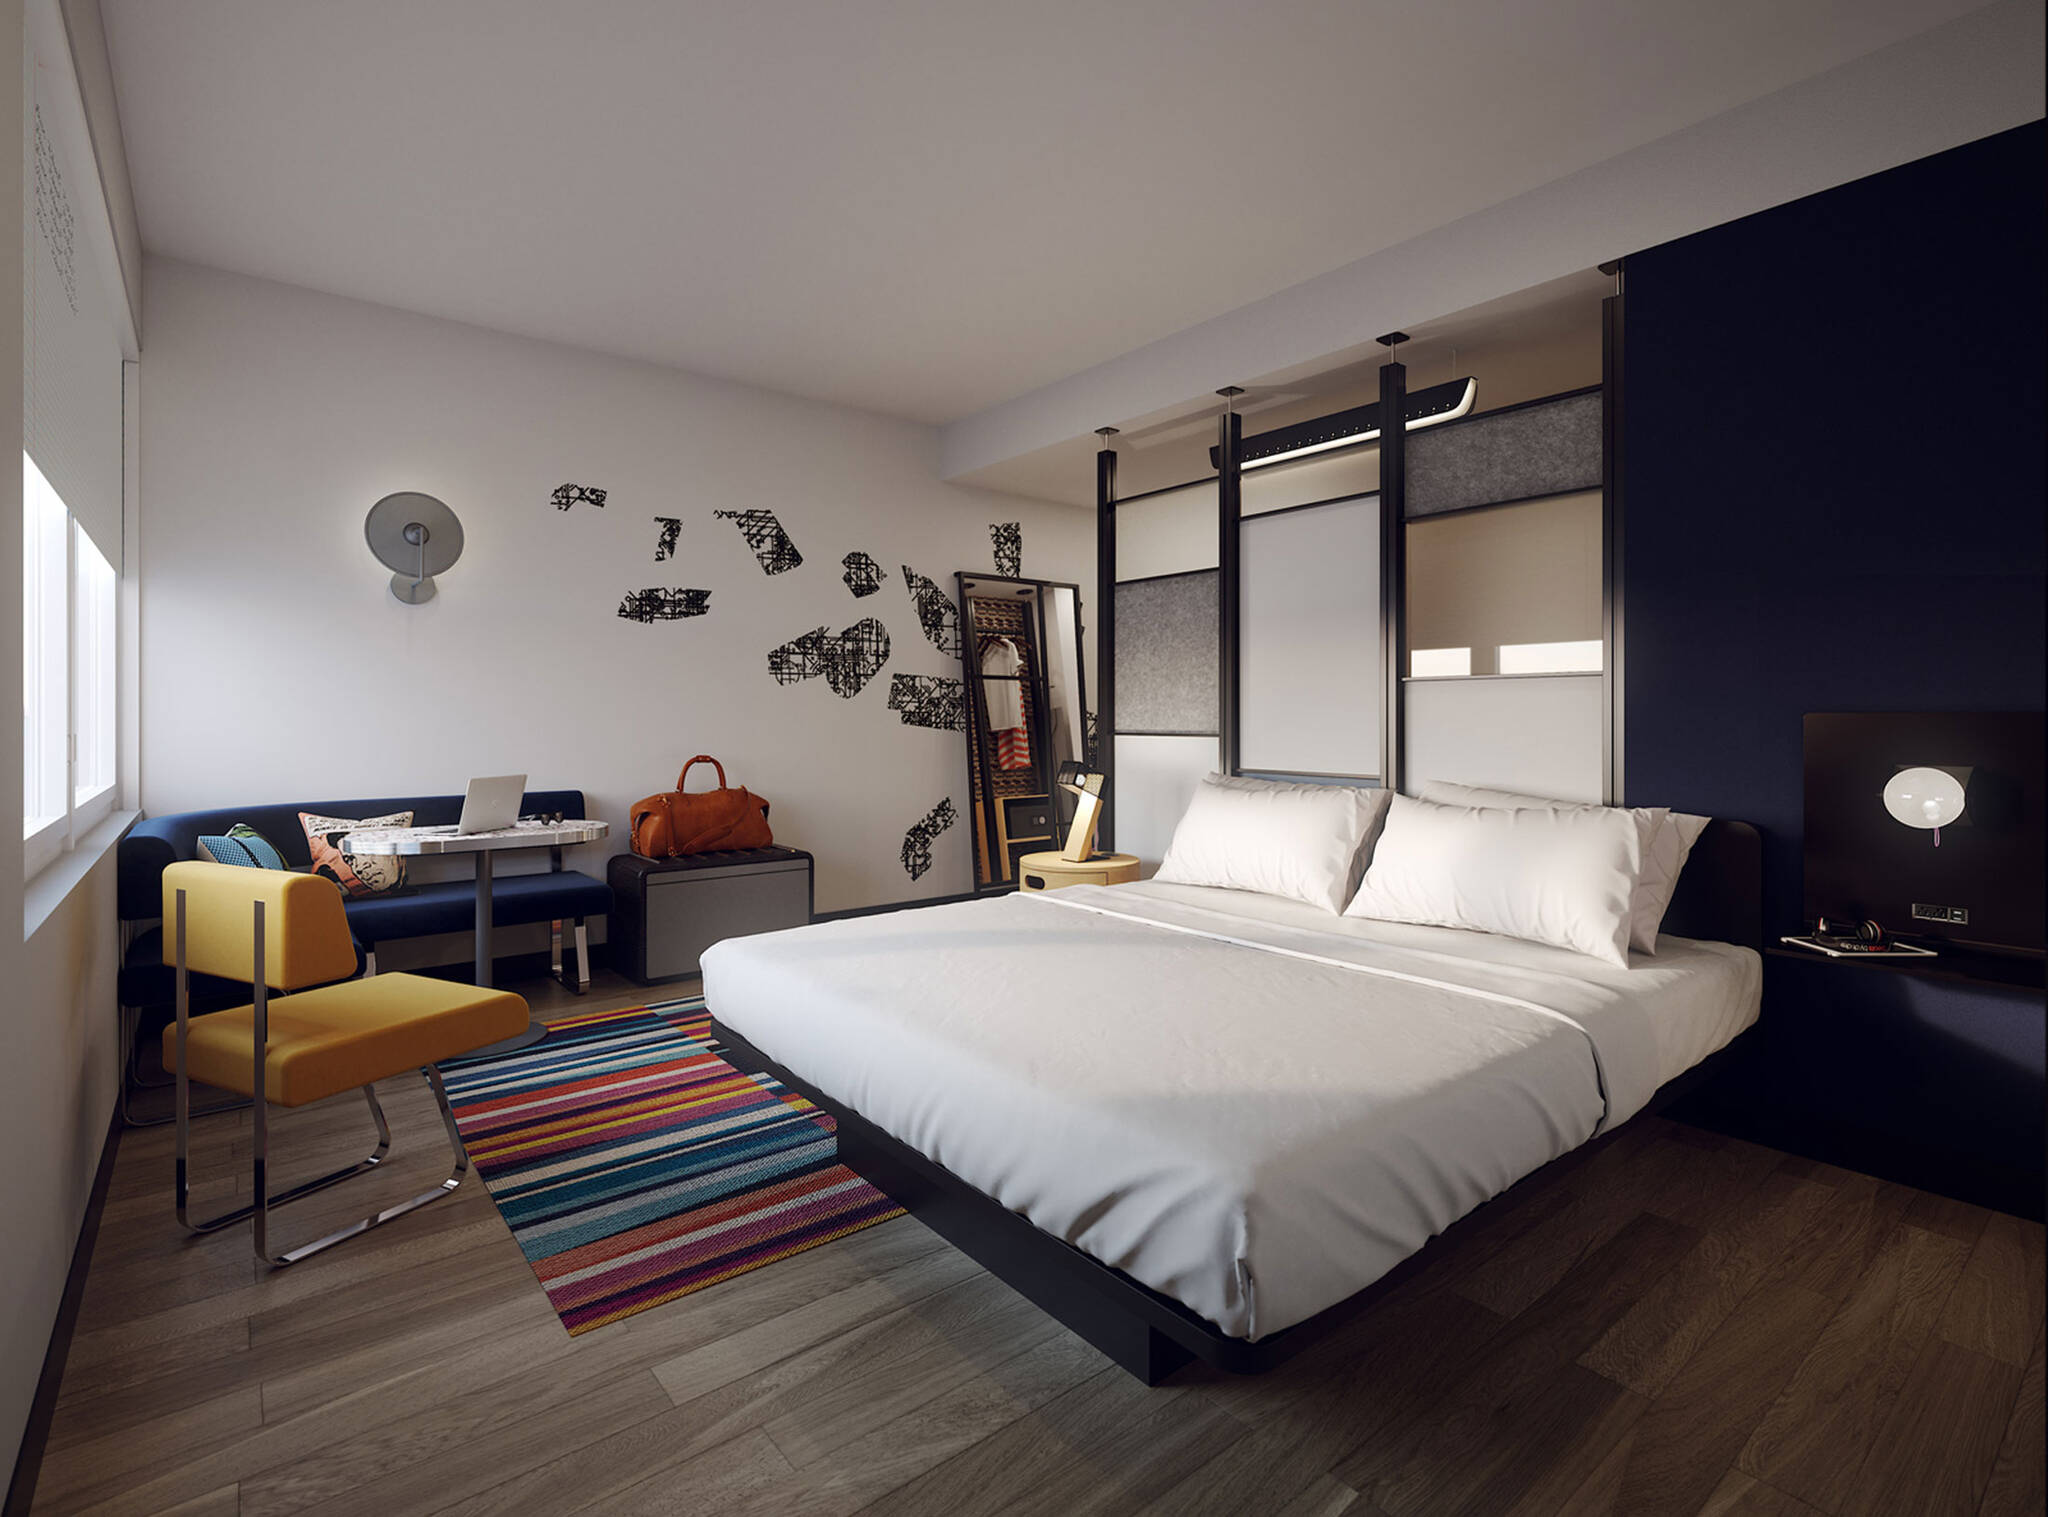 Guestroom of the Aloft hotel in the Dallas Alpha West mixed-use complex project located in Dallas, Texas designed by the architecture studio Danny Forster & Architecture